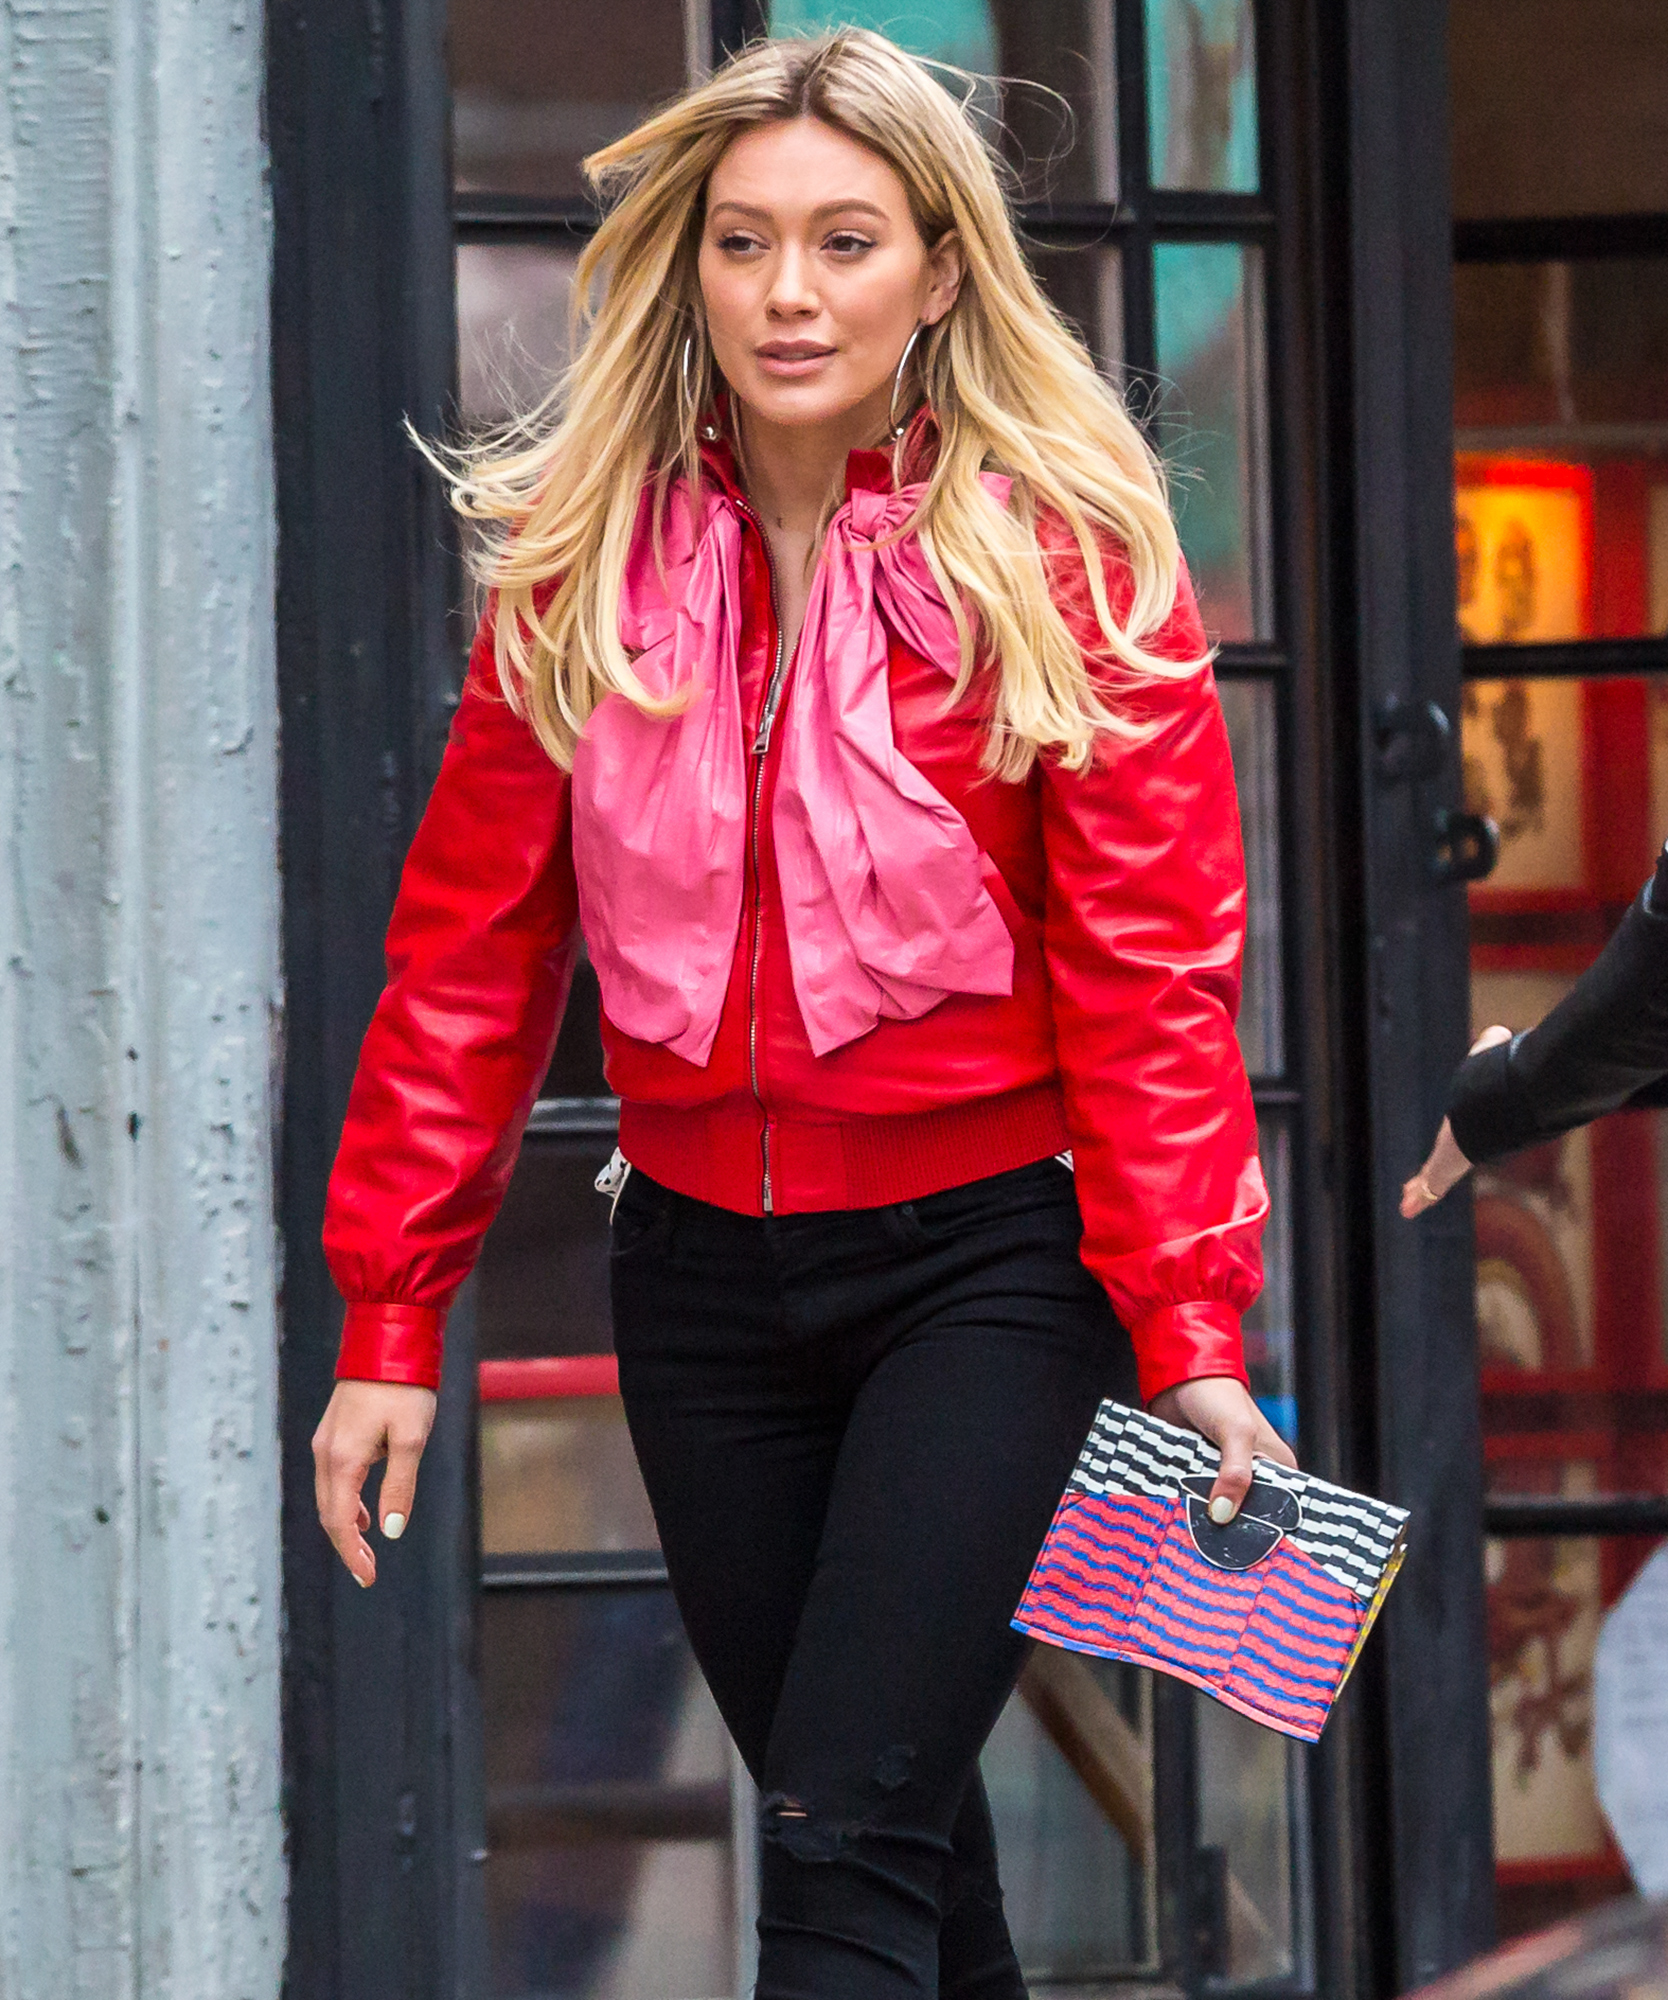 EXCLUSIVE Hilary Duff Steps Out in NYC Looking Fantastic in Red